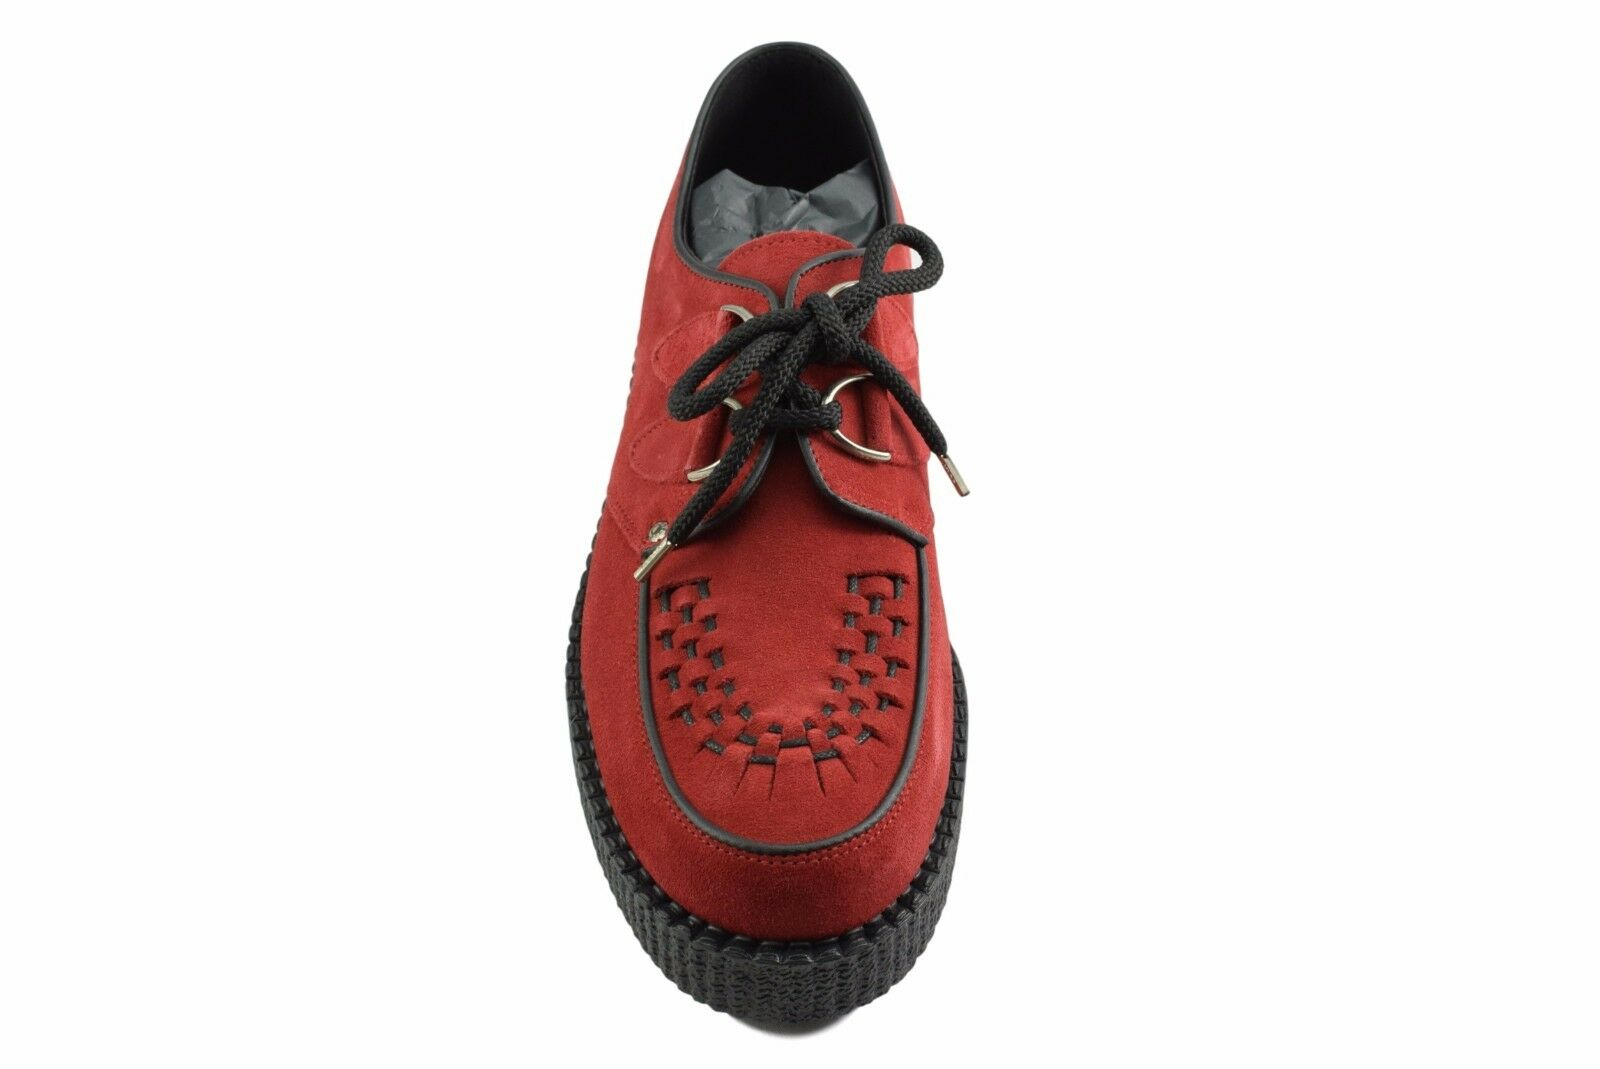 Steel Ground Schuhes ROT Suede Creepers Niedrig Niedrig Niedrig Sole D Ring Casual Sc400Z5 e46a96